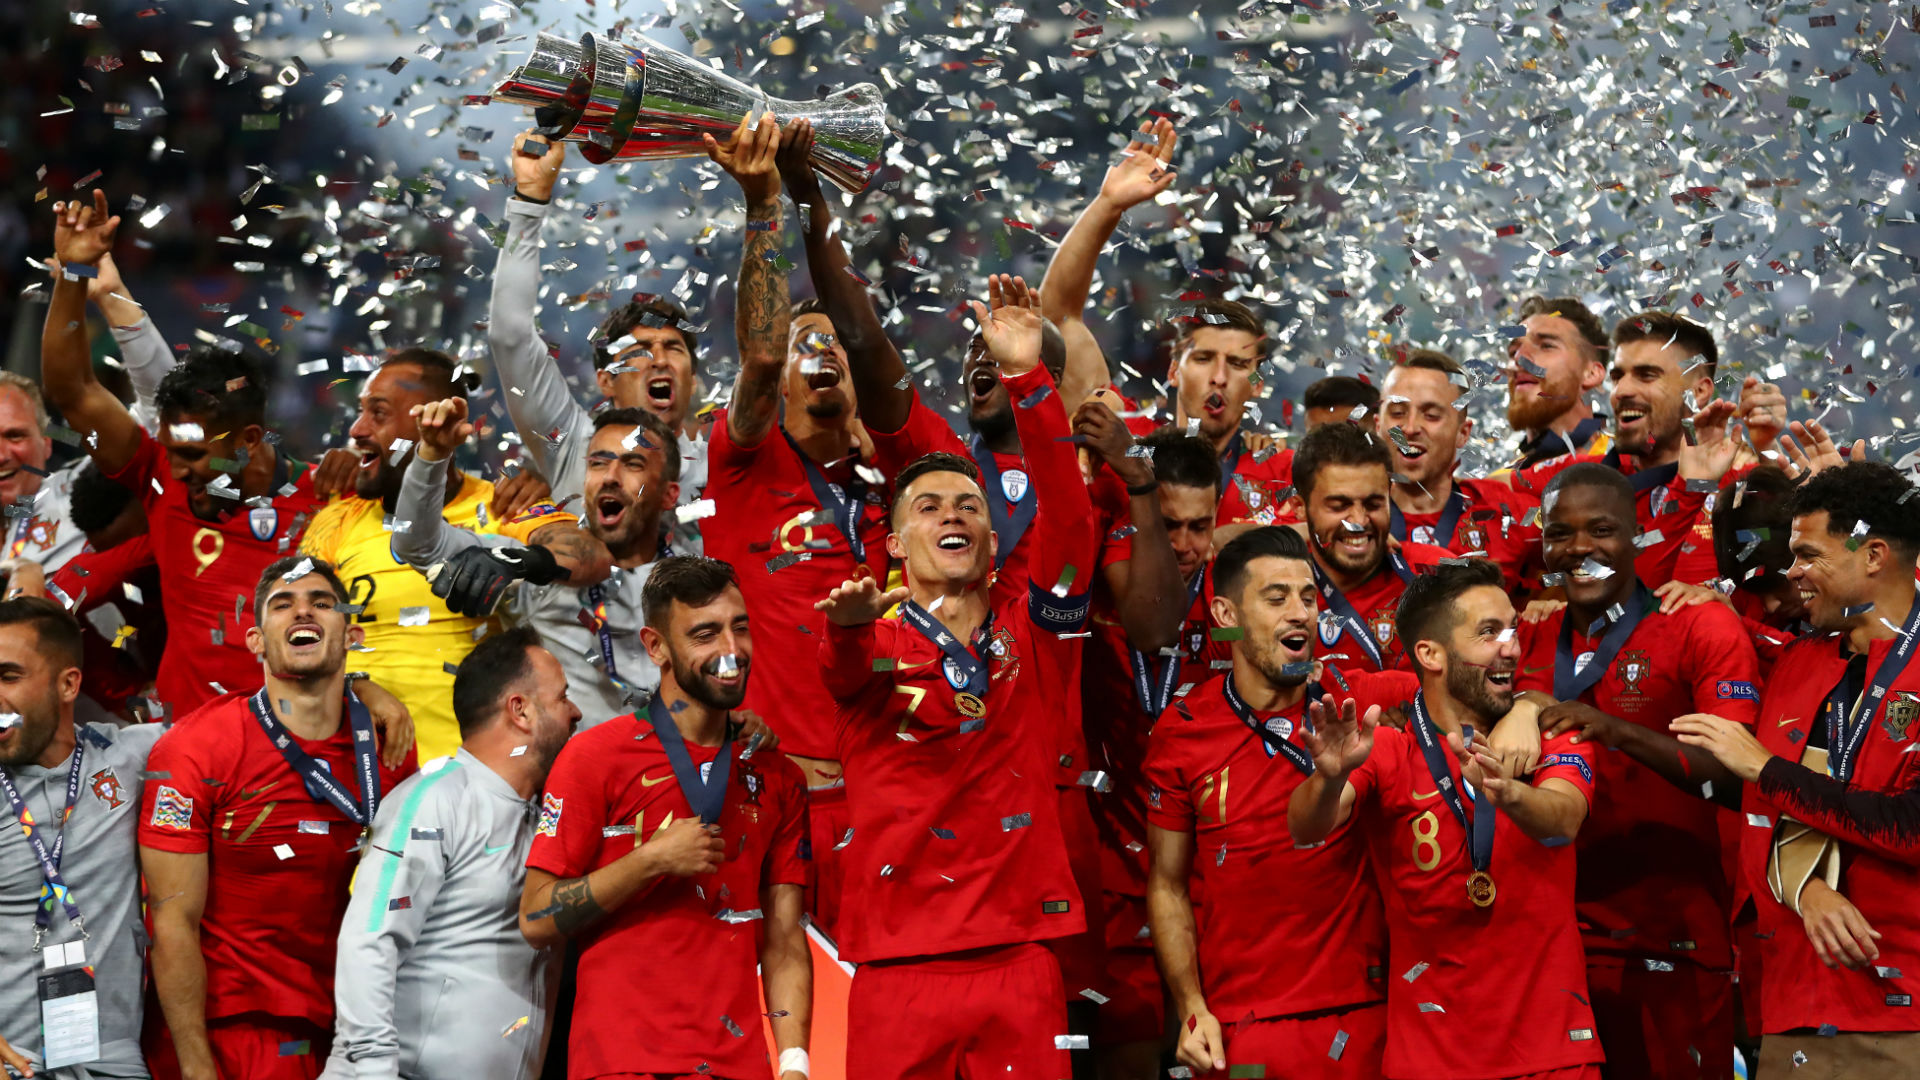 Nations League draw: France to meet Portugal and Croatia, Germany grouped with Spain